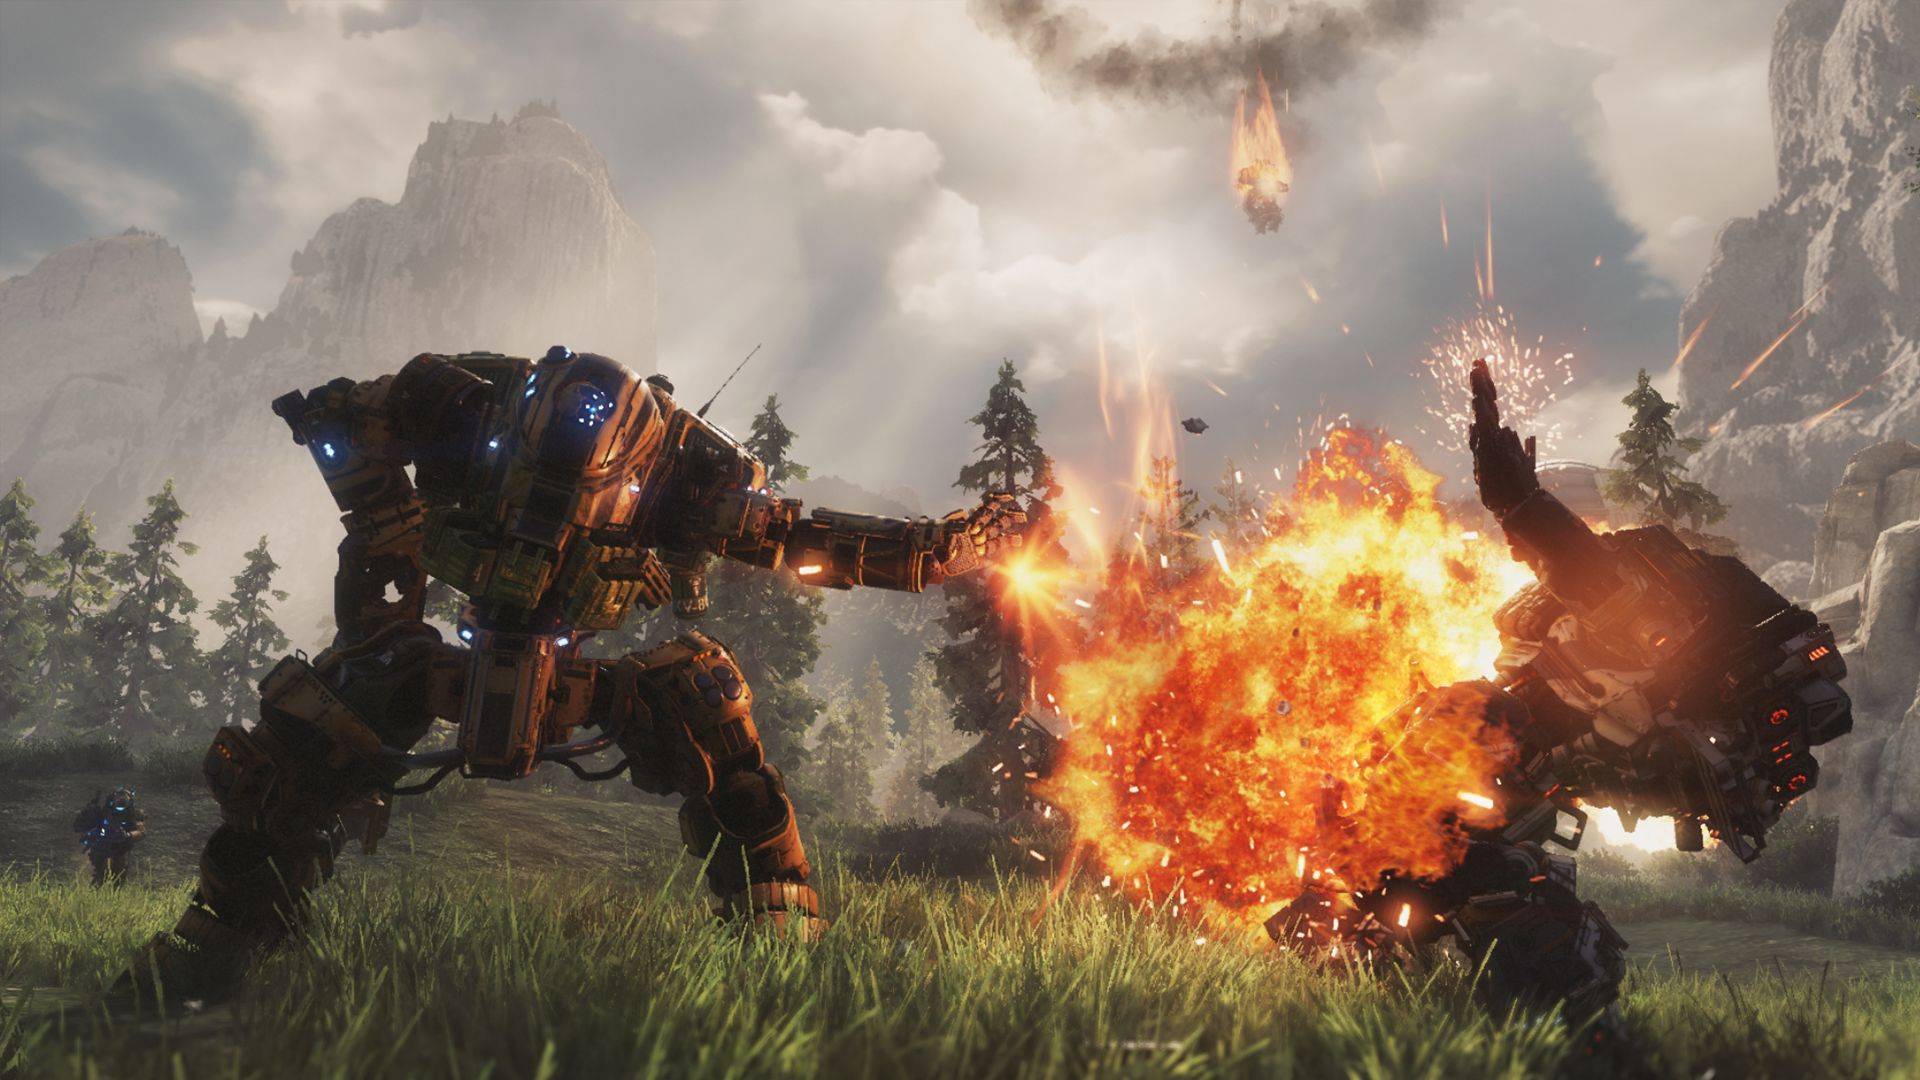 Titanfall 2 is enjoying a second wind thanks to Steam